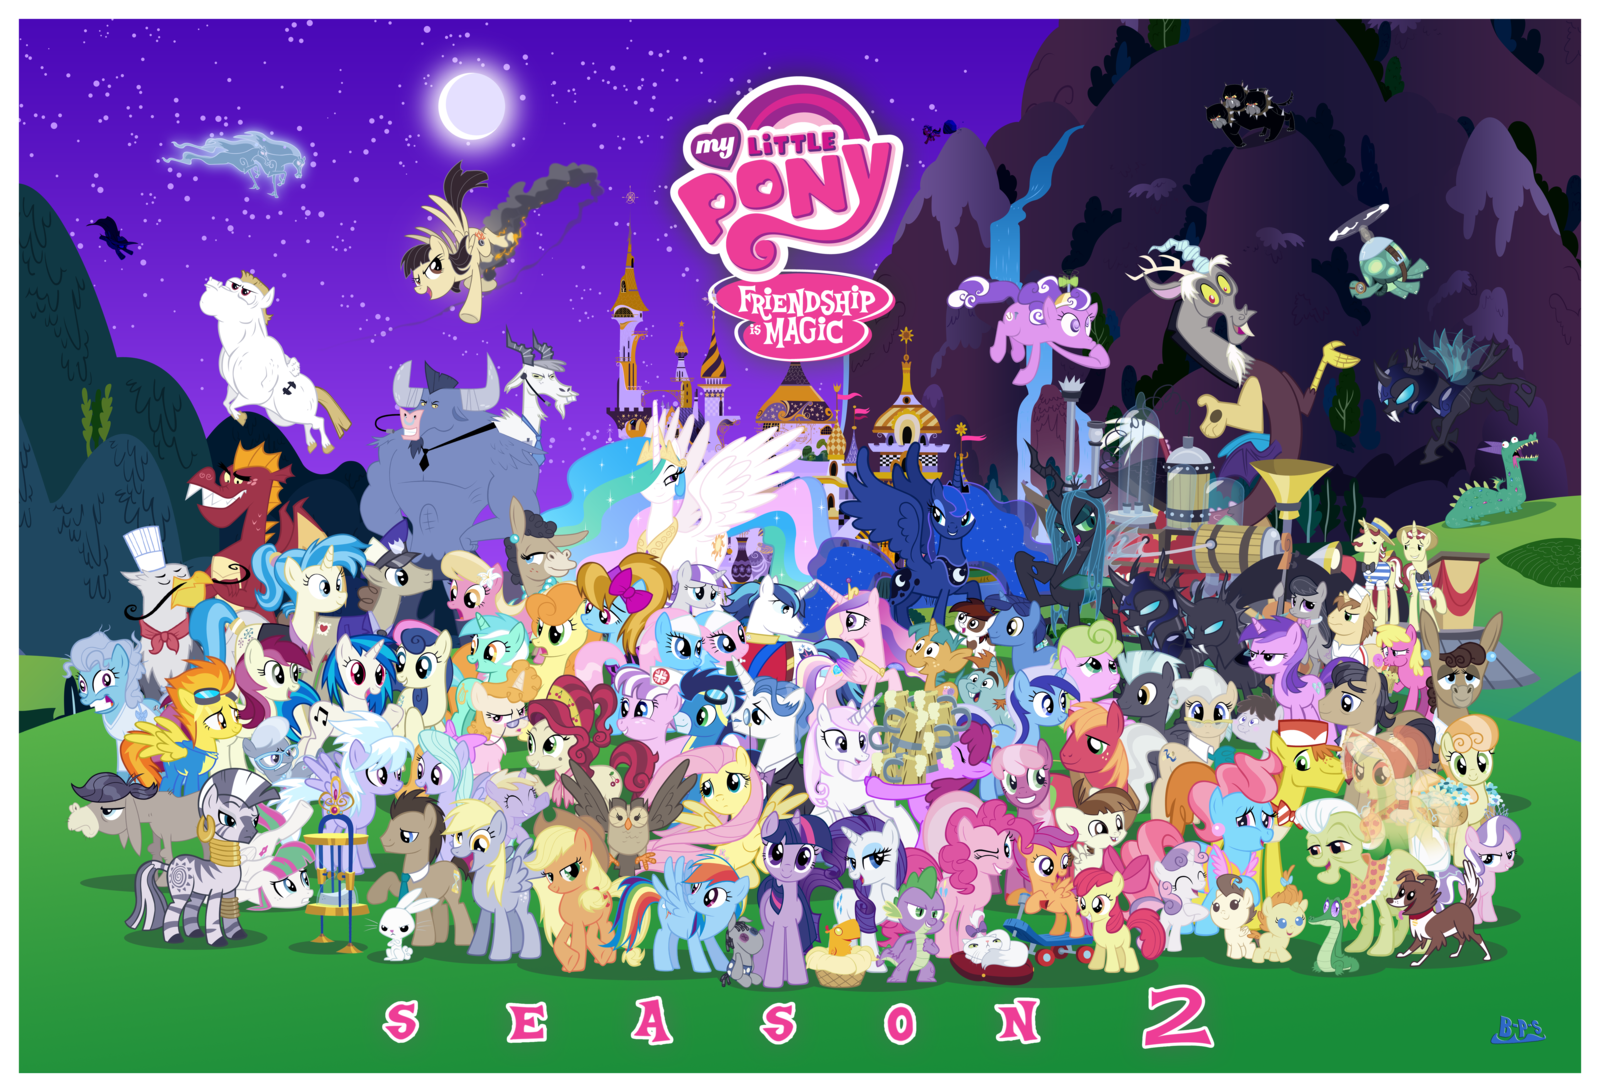 My little pony characters list with pictures.